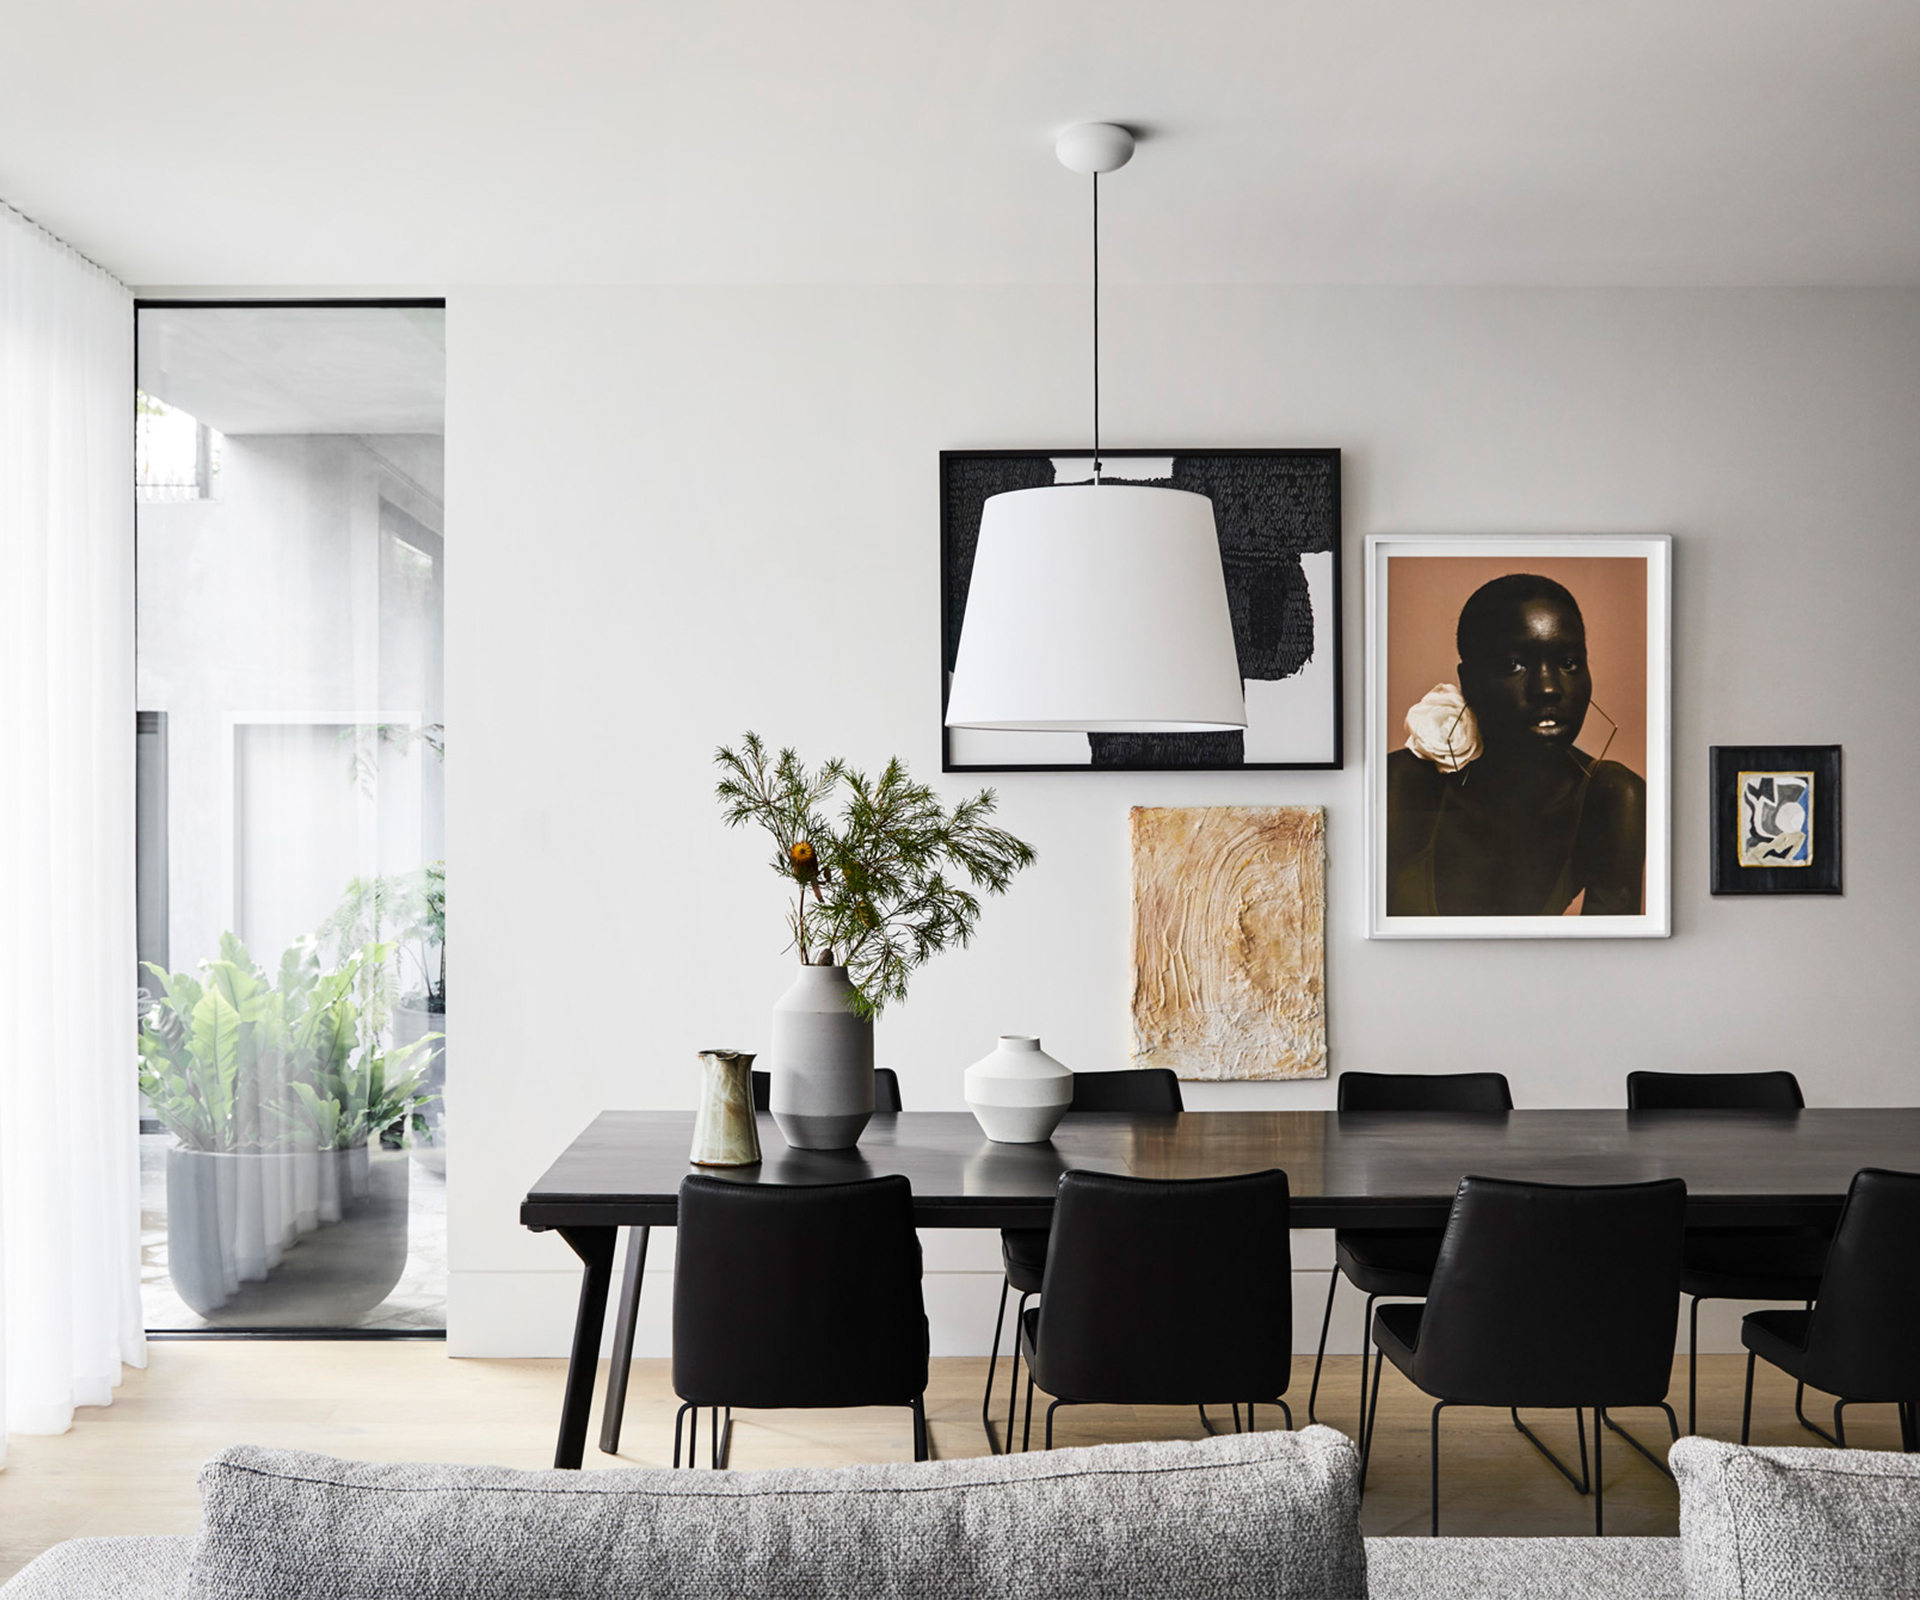 George + Powlett development sets the standards for modern apartment living